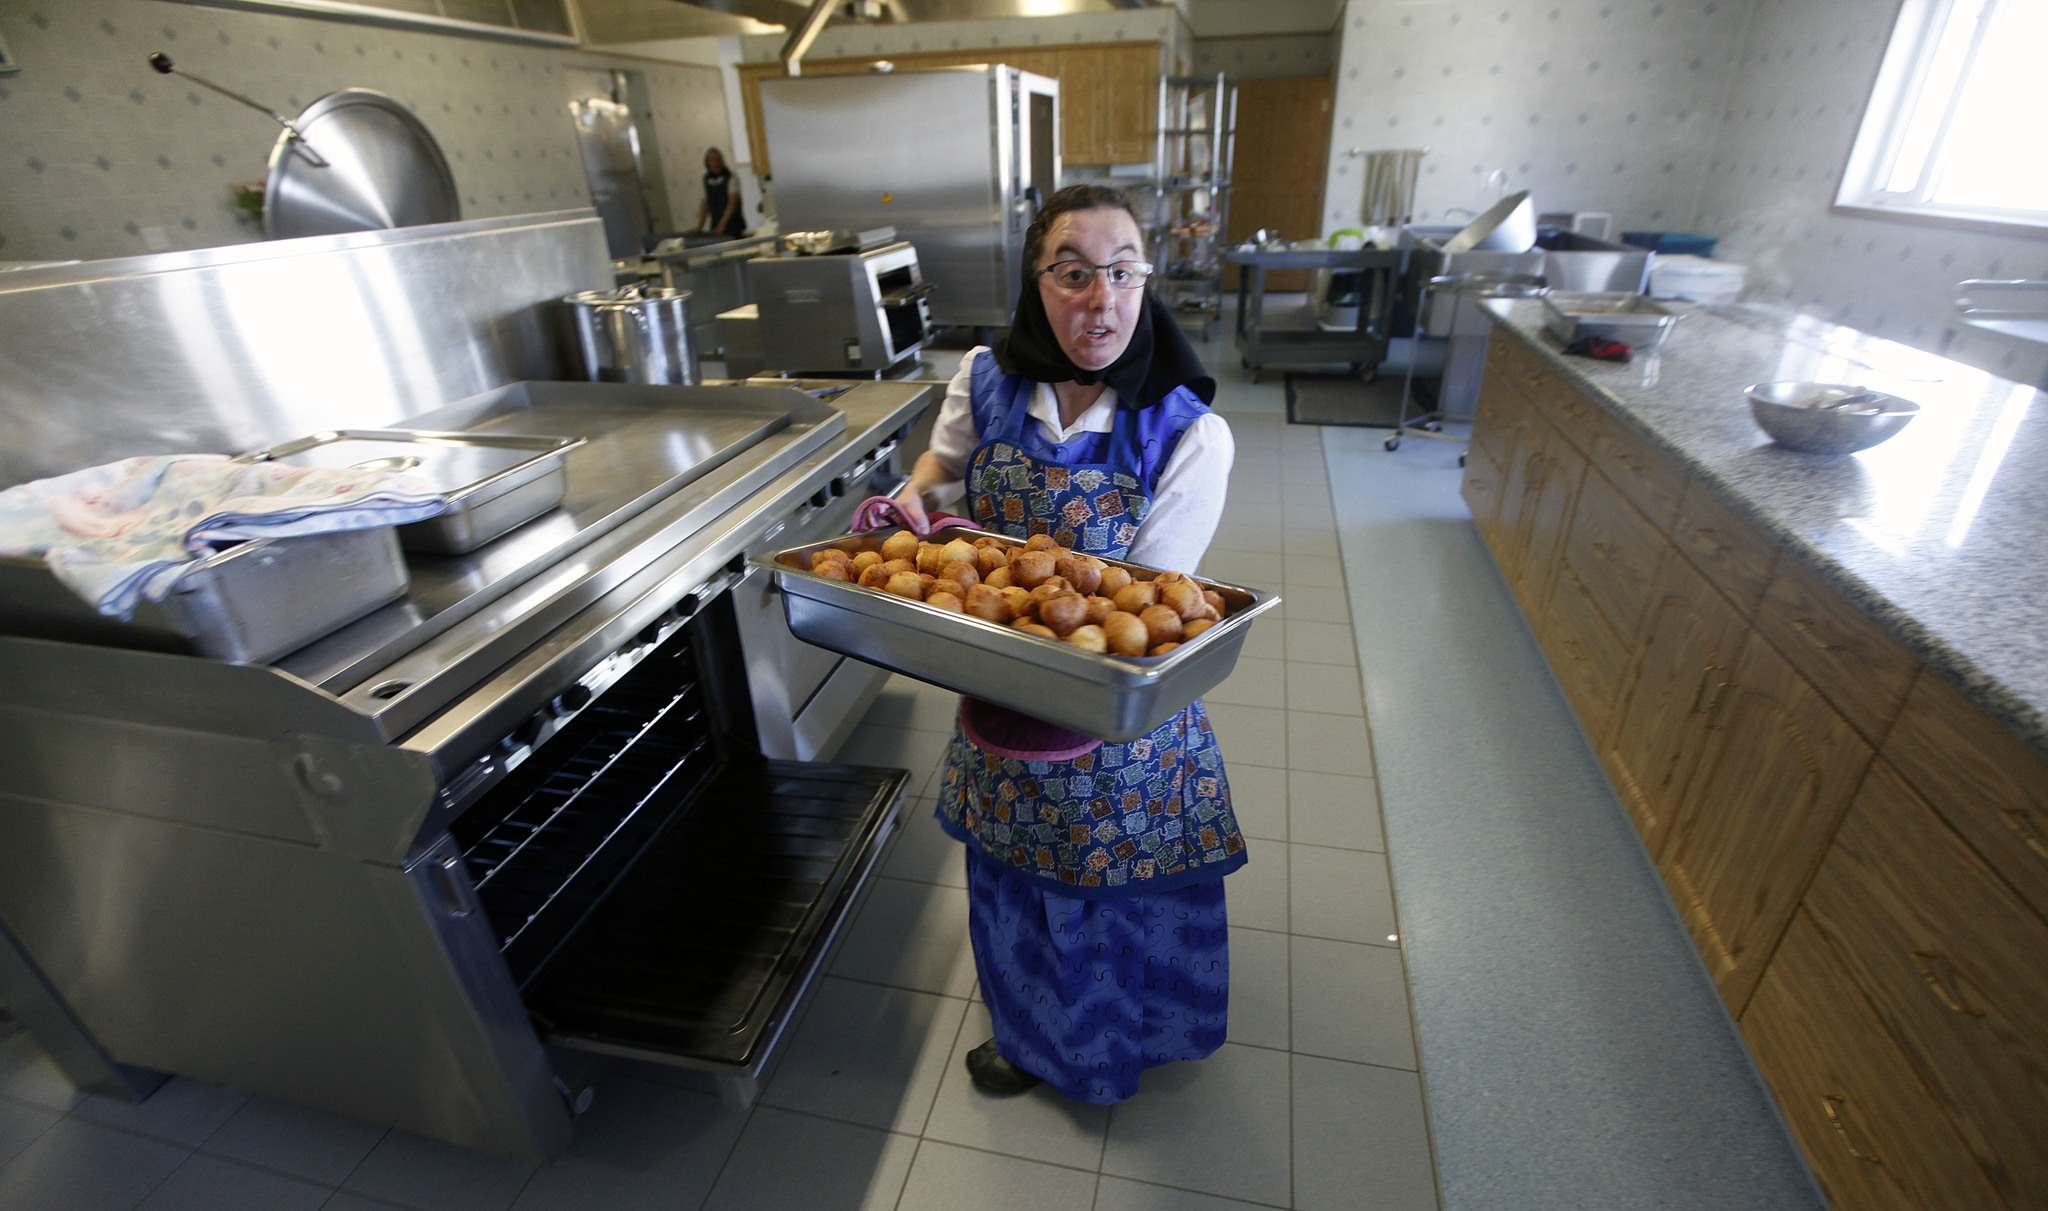 PHIL HOSSACK/Winnipeg Free Press</p><p>Melissa Hofer removes cooked dumplings from an oven the James Valley Hutterite Colony.</p>